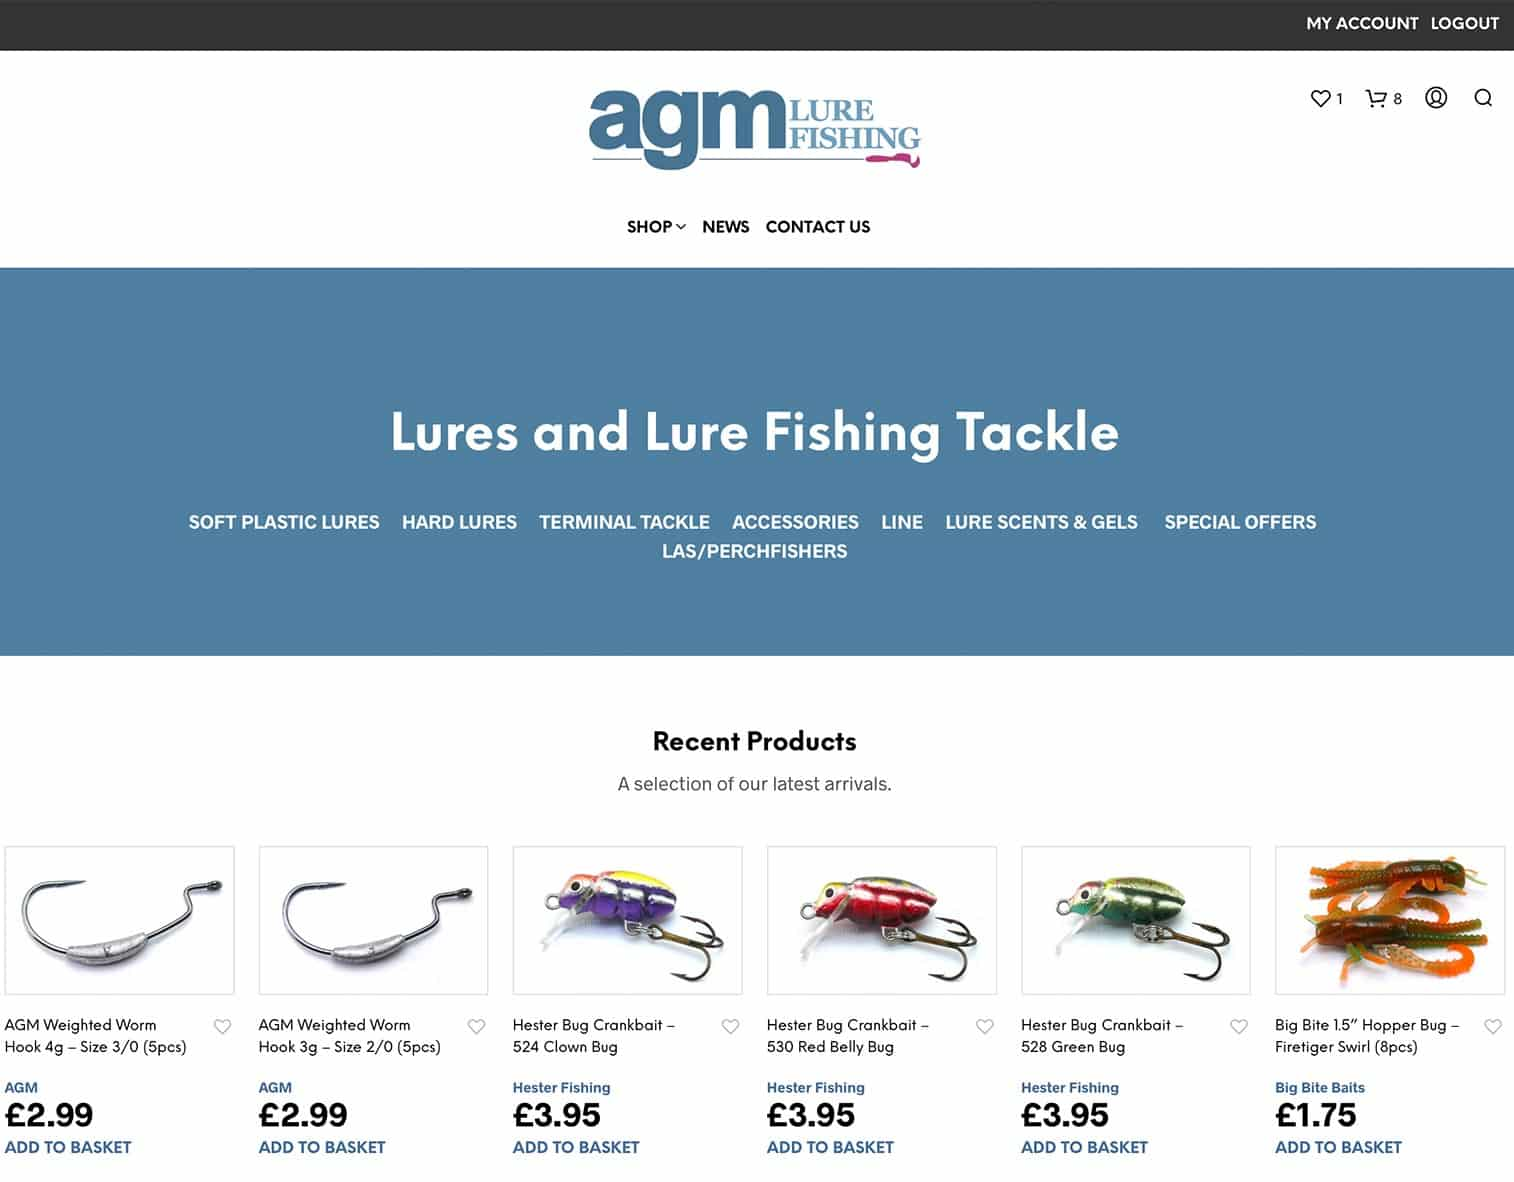 AGM Lure Fishing Website